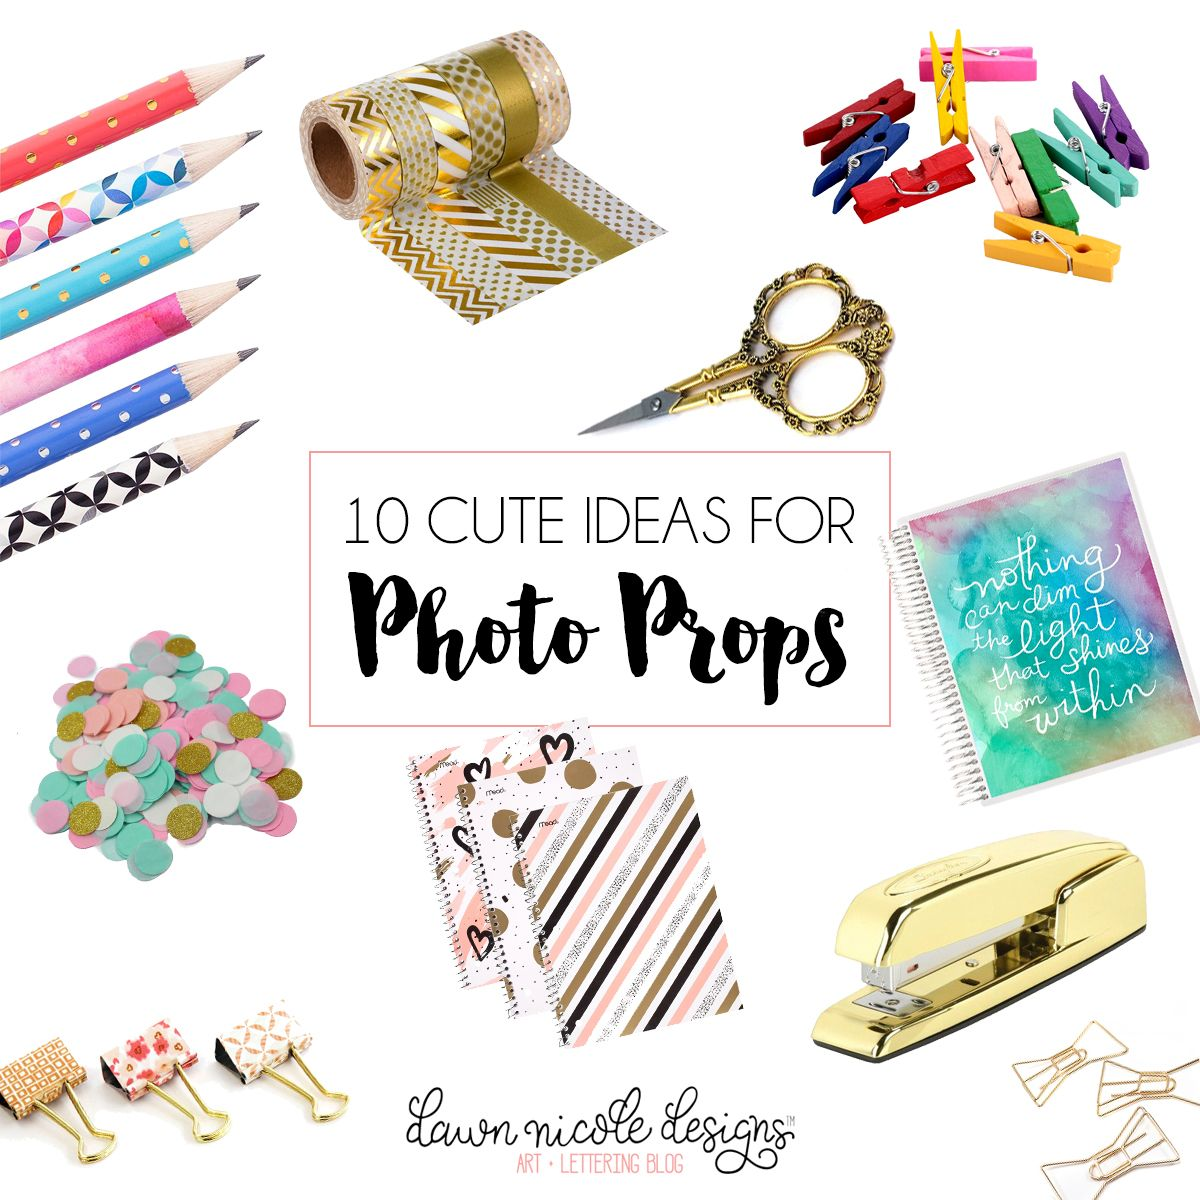 10 Cute Ideas For Photo Props